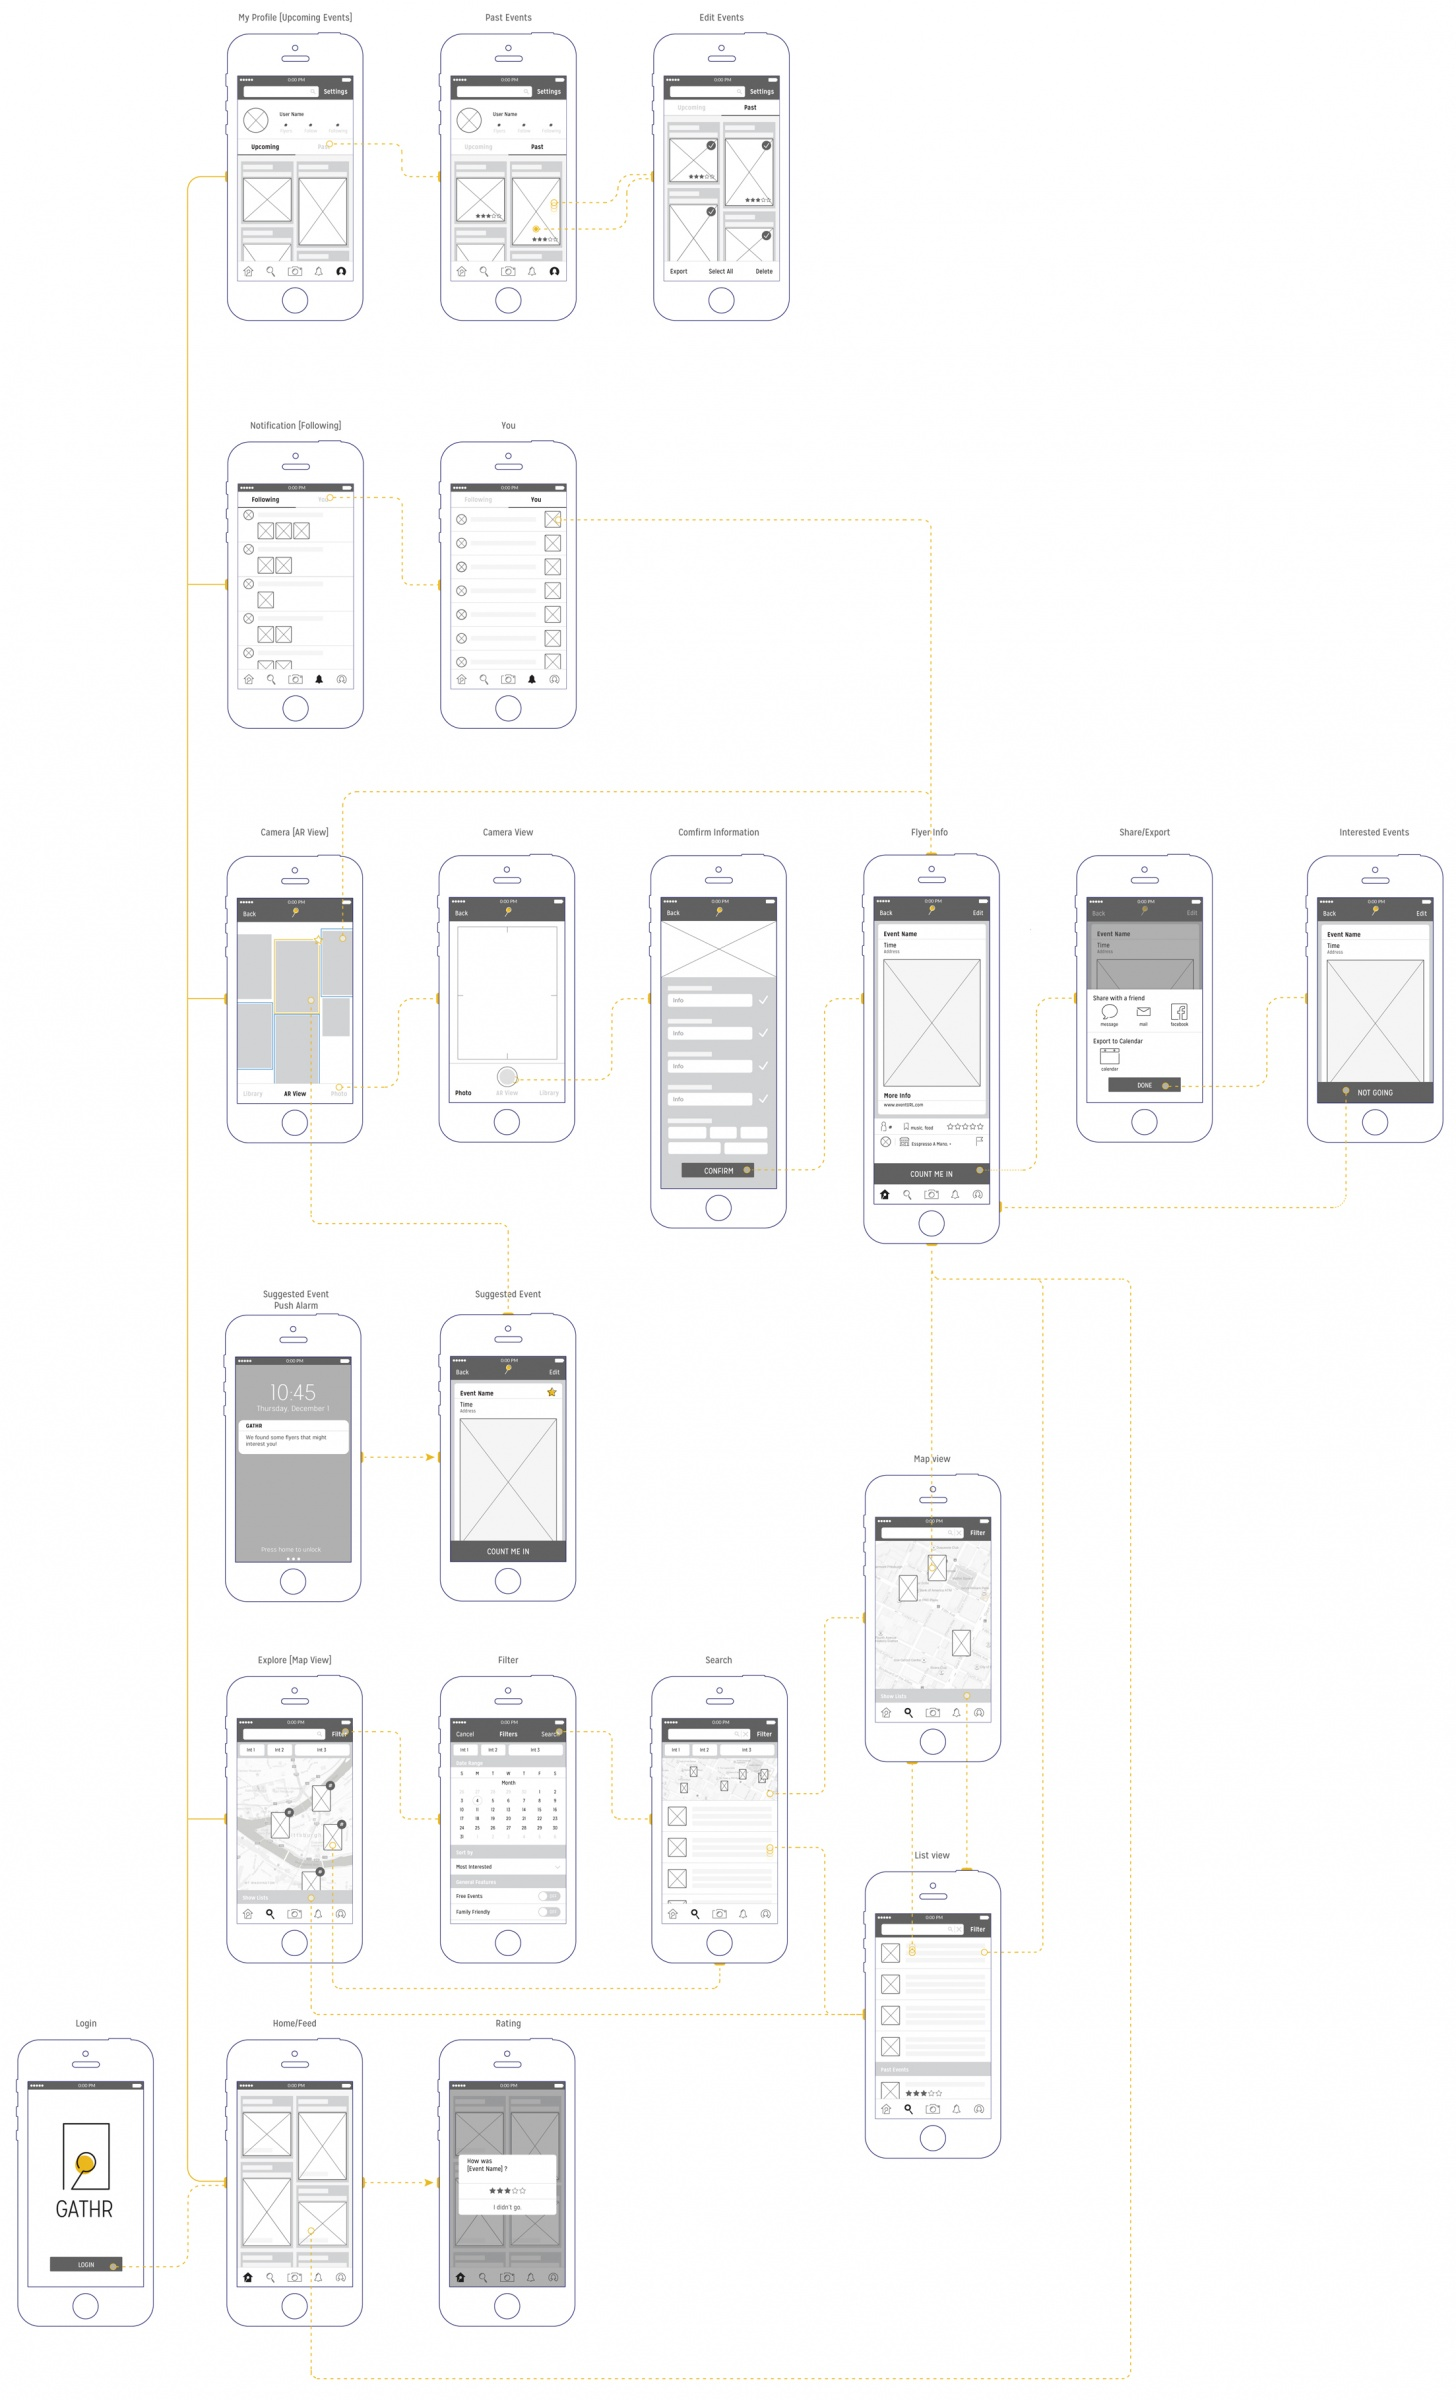 Mobile Application Wireframe